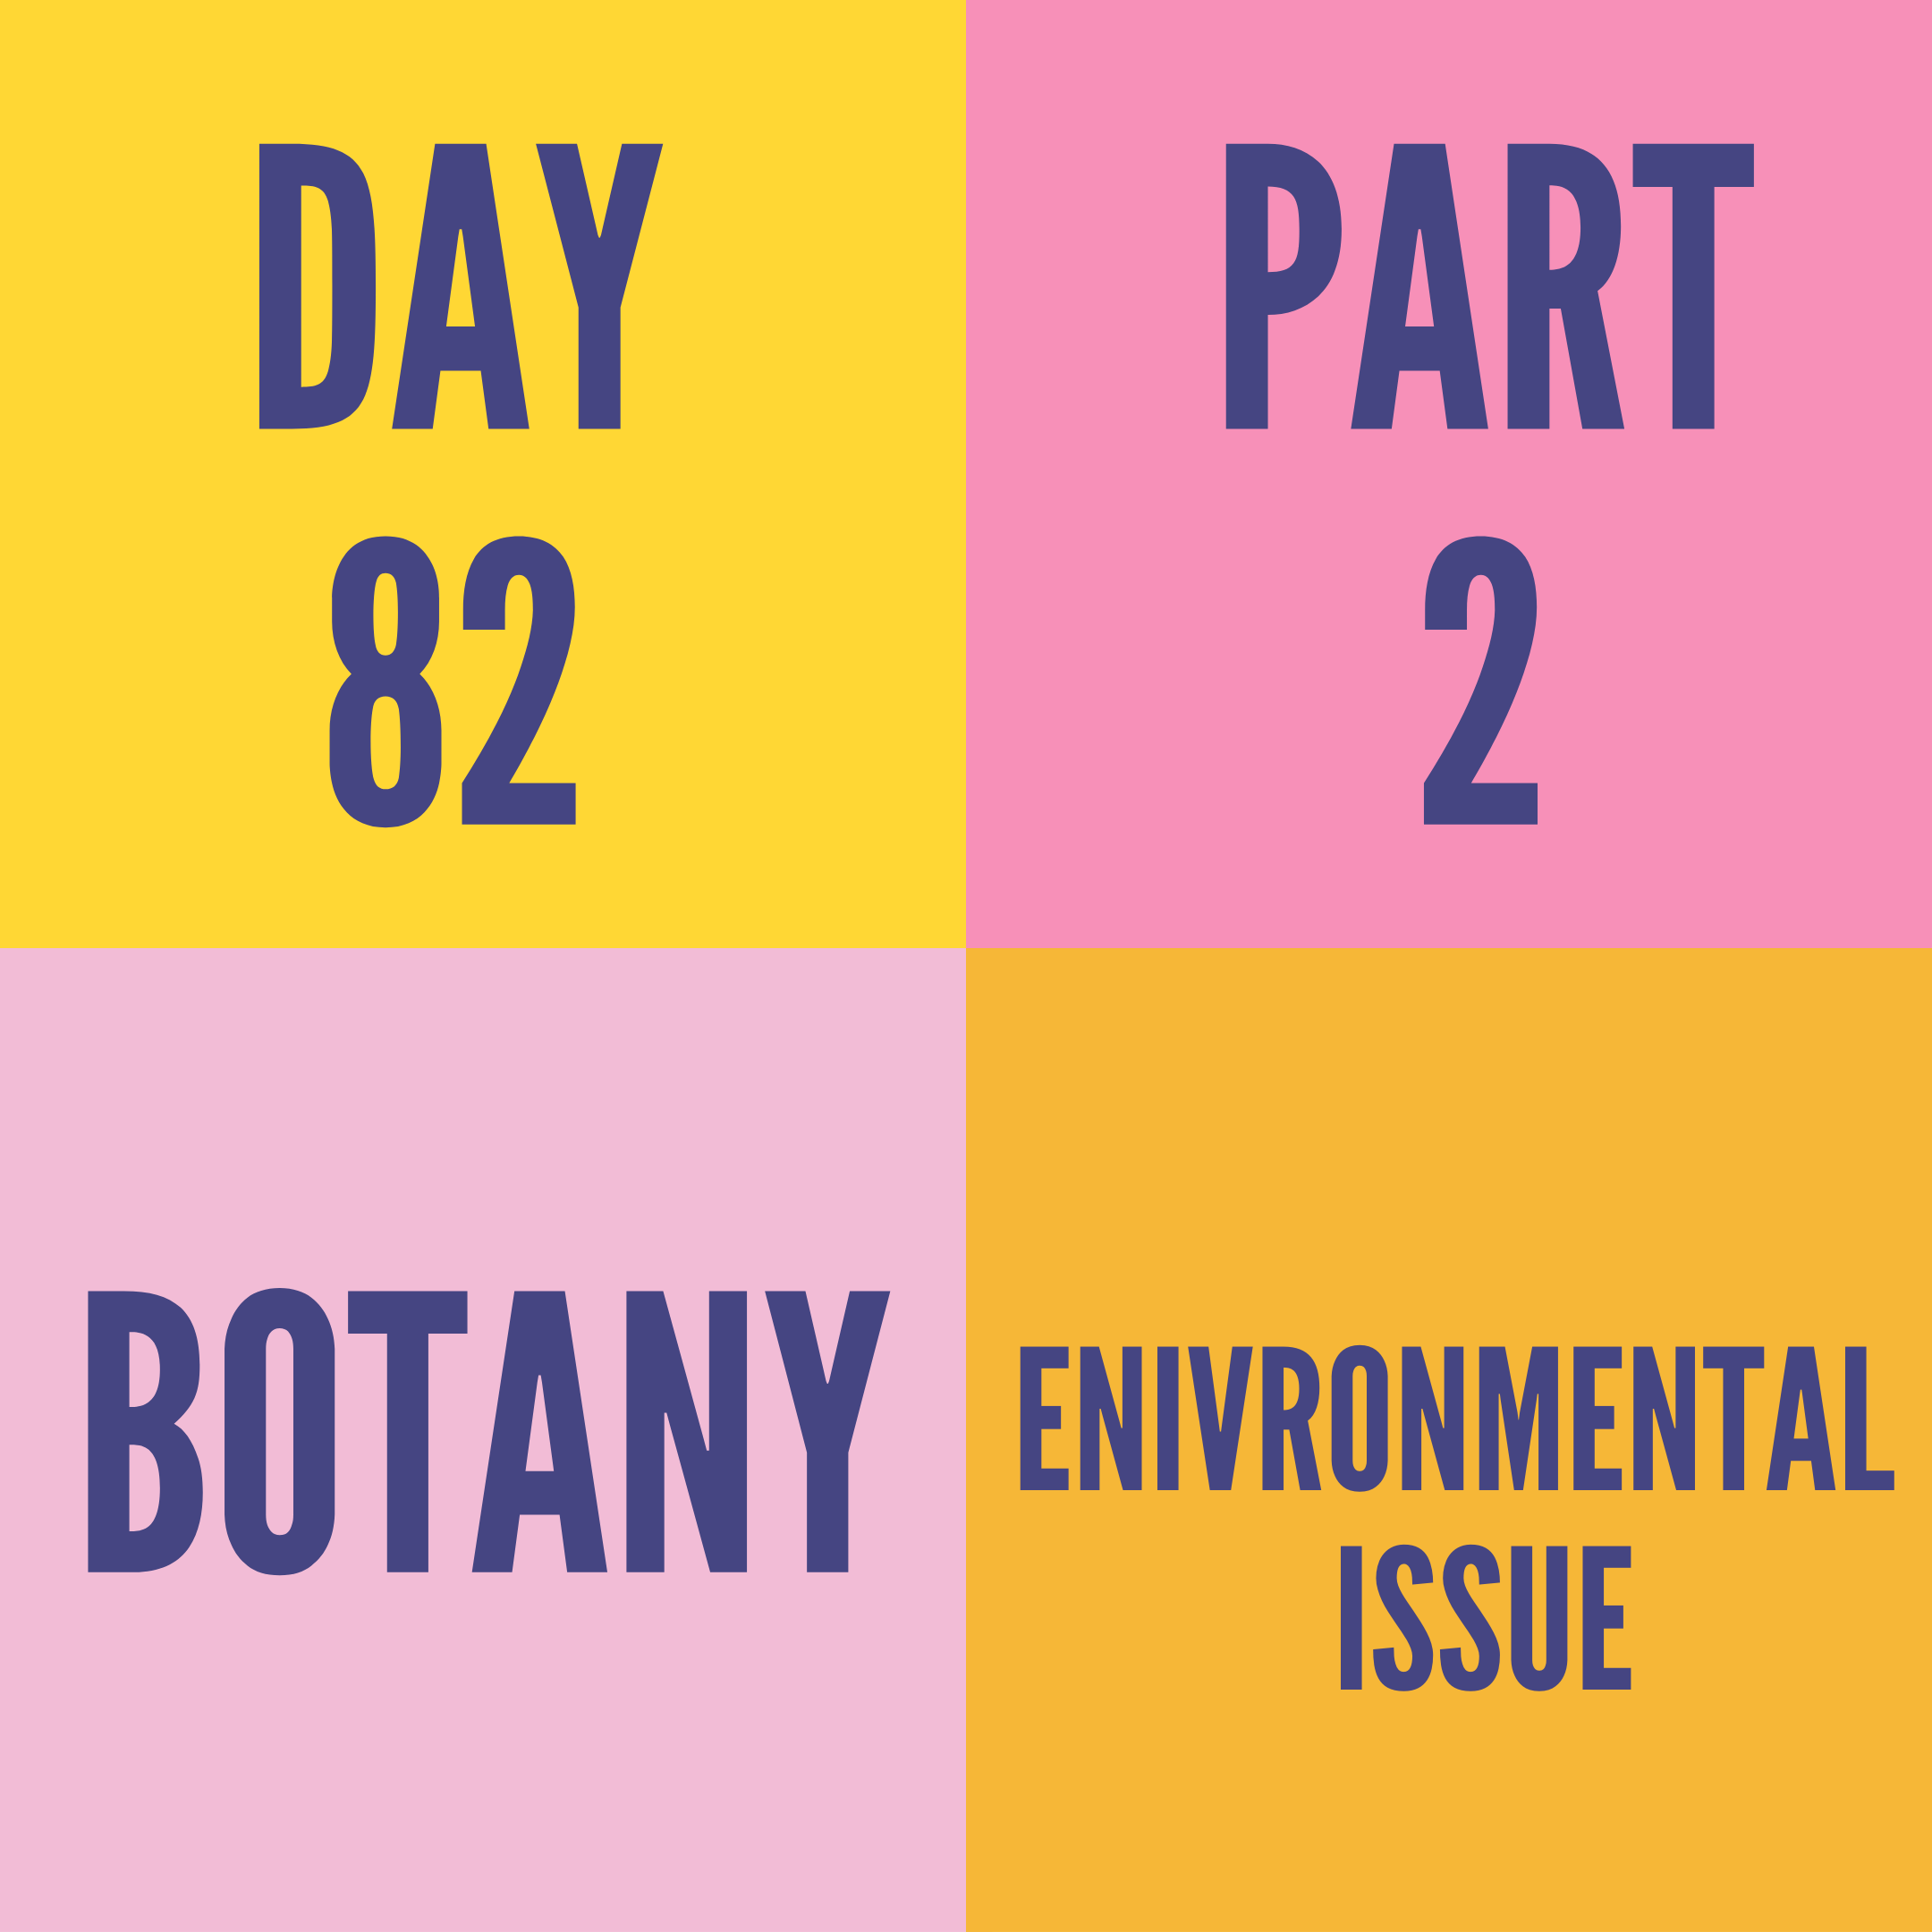 DAY-82 PART-2 ENIVRONMENTAL ISSUE